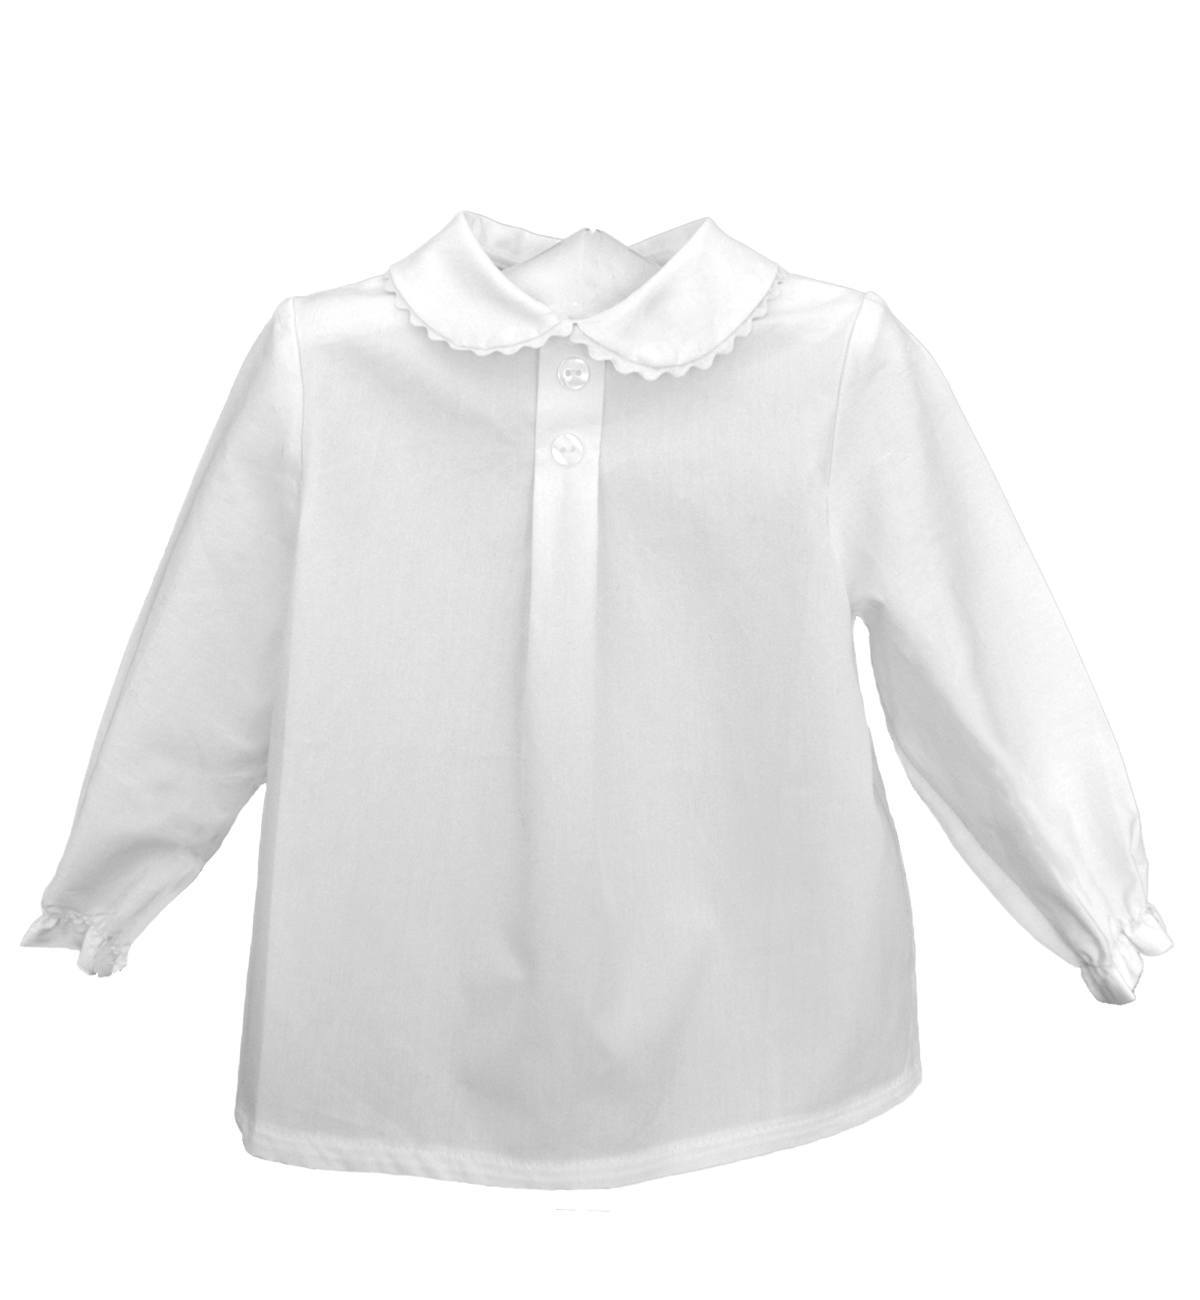 Spanish baby clothes | baby Blouse | 'Peter Pan' collar shirt |babymaC  - 1